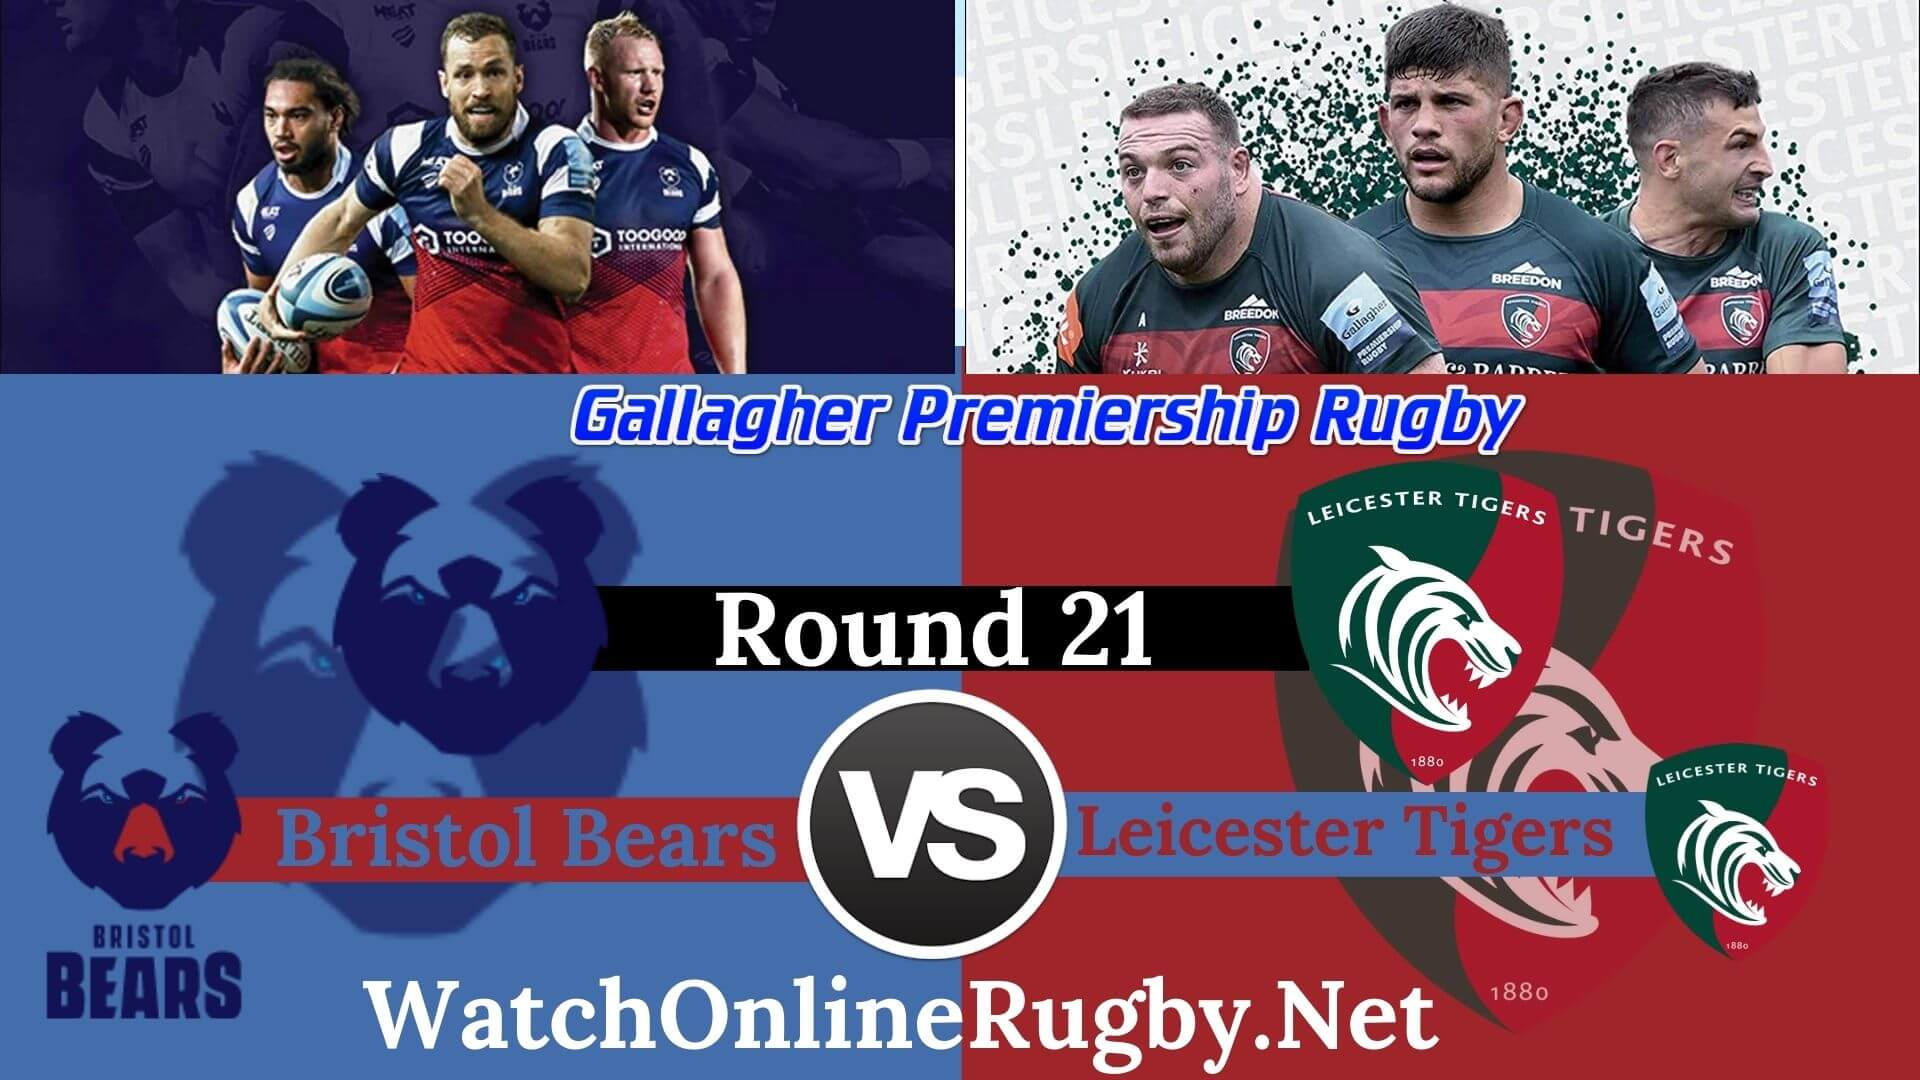 bristol-bears-vs-leicester-tigers-live-stream